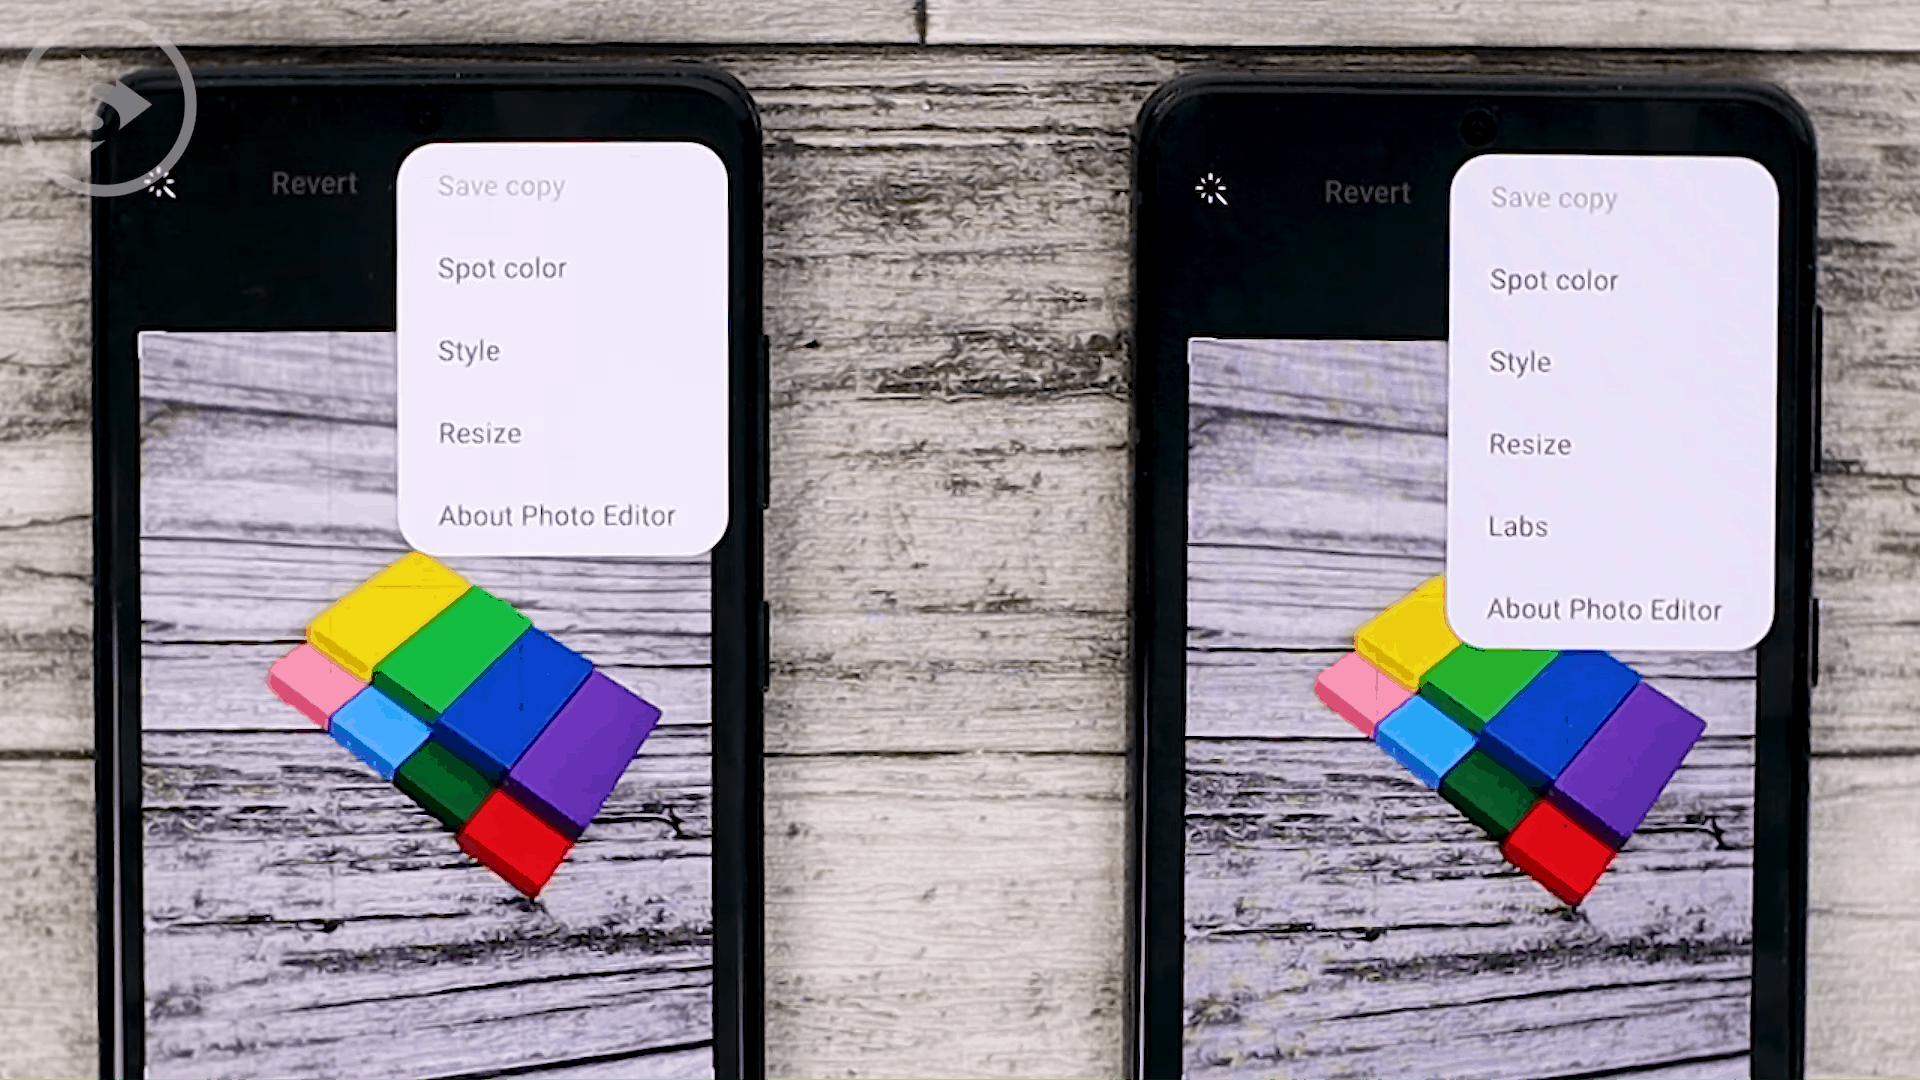 Object Eraser - Check out the latest One UI 3.1 features on the Samsung S21 + that are not yet available on One UI 3.0 Samsung S20 + (PART 2)